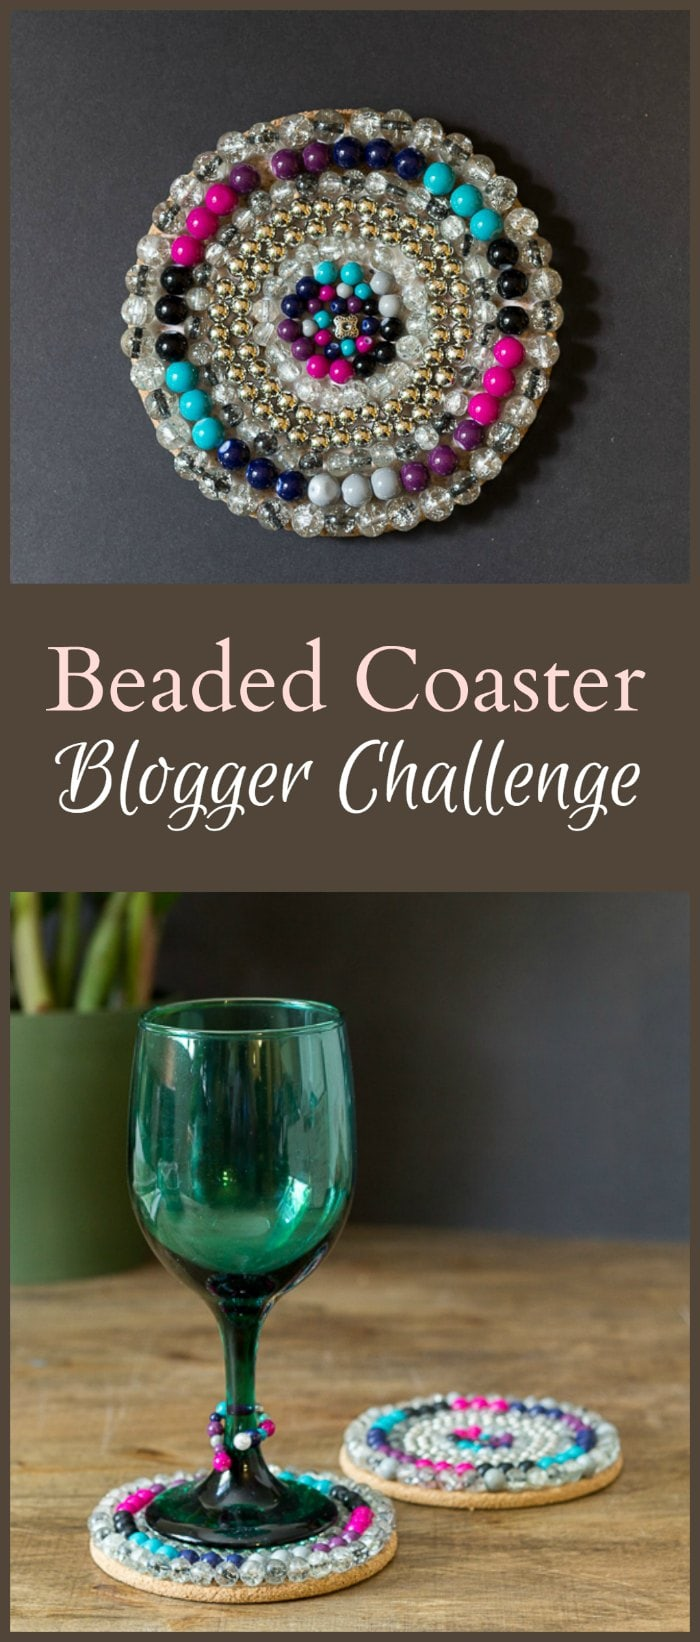 Learn how to make this easy bead project which was part of a group blogger challenge. Beaded coasters for the patio would make a great gift.